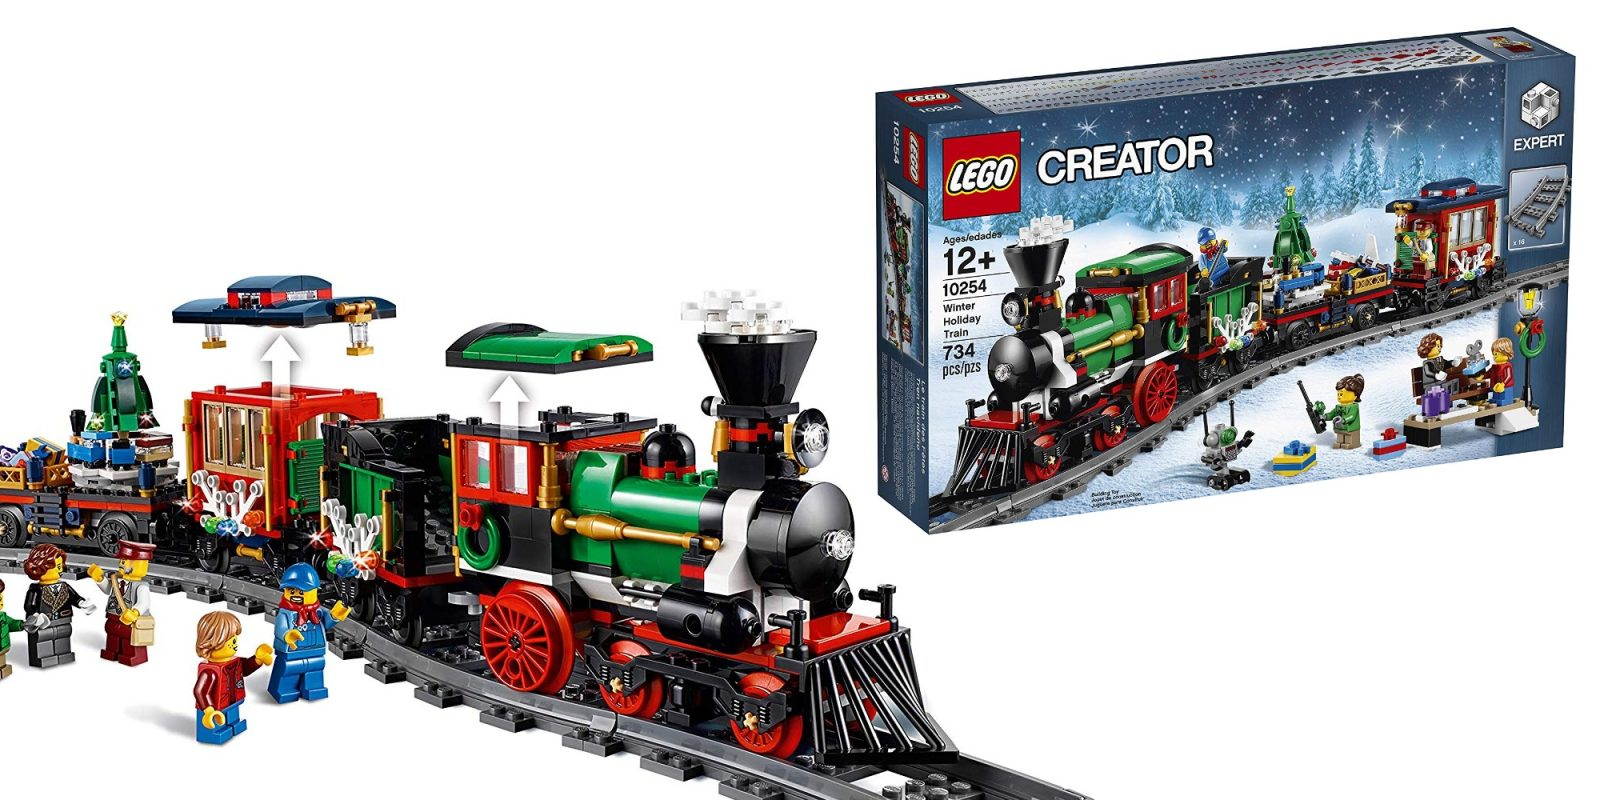 LEGO's Creator Winter Holiday Train drops to new low at $84.50, more from $17